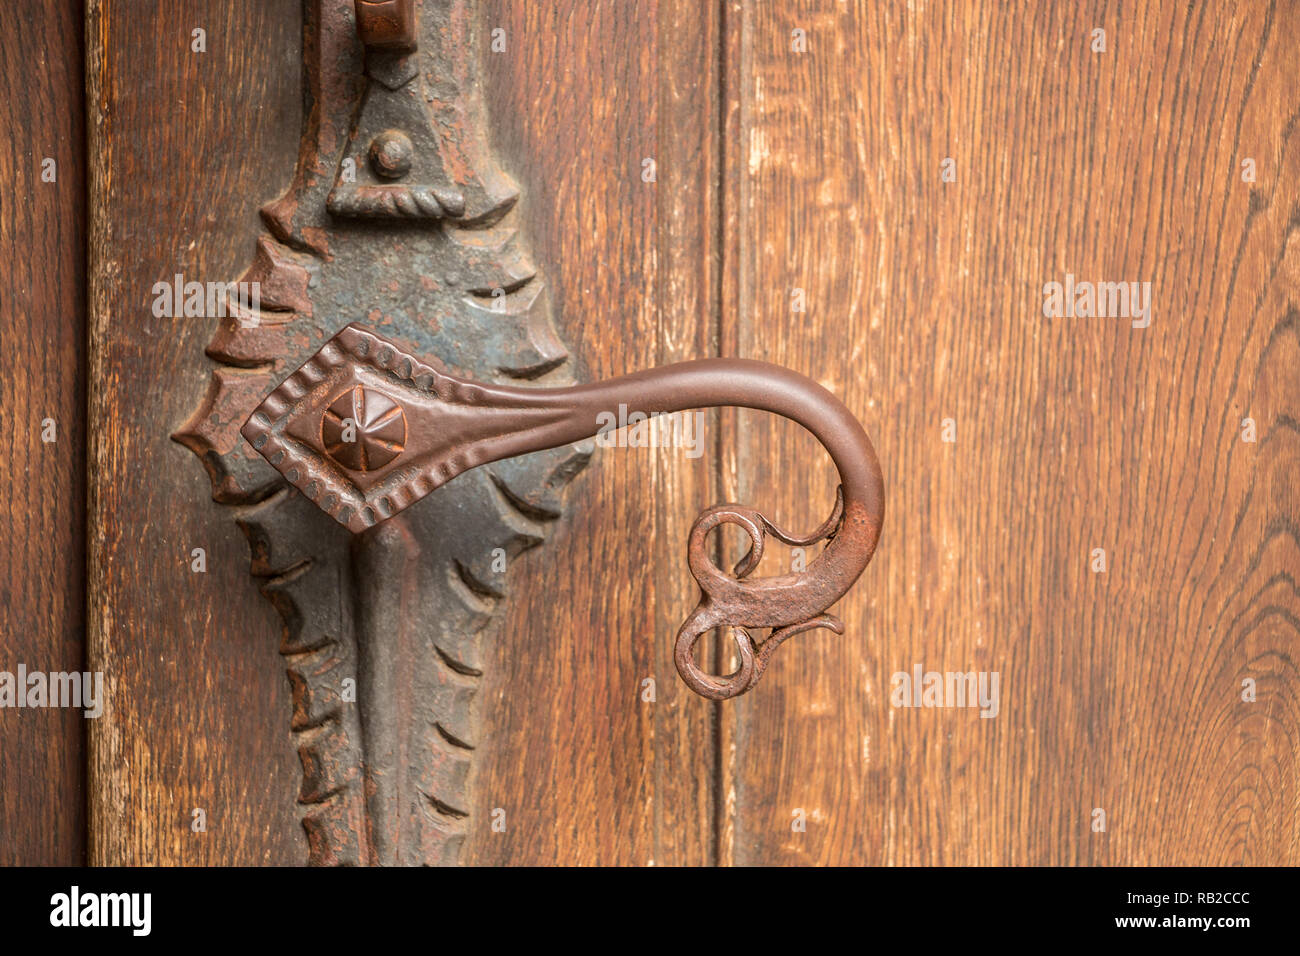 Door handle of an old historical building made of iron - Stock Image